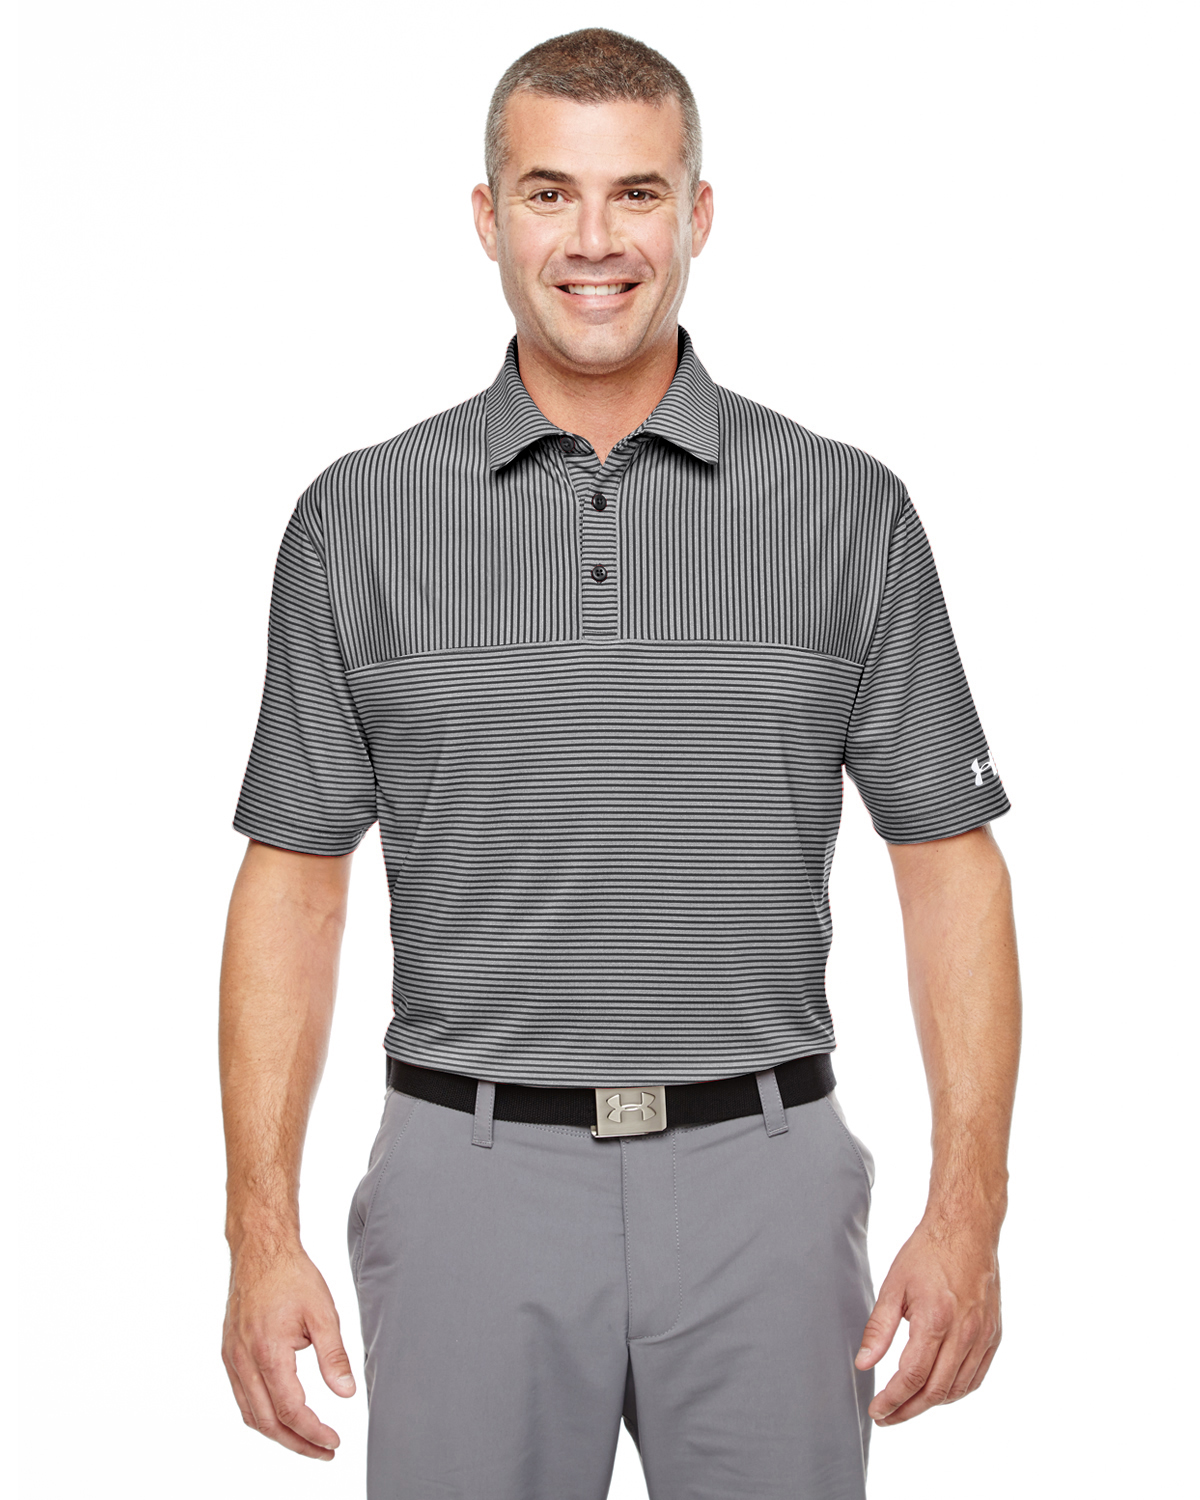 0b9fba729d5d Under Armour Apparel Line for Corporate Branding